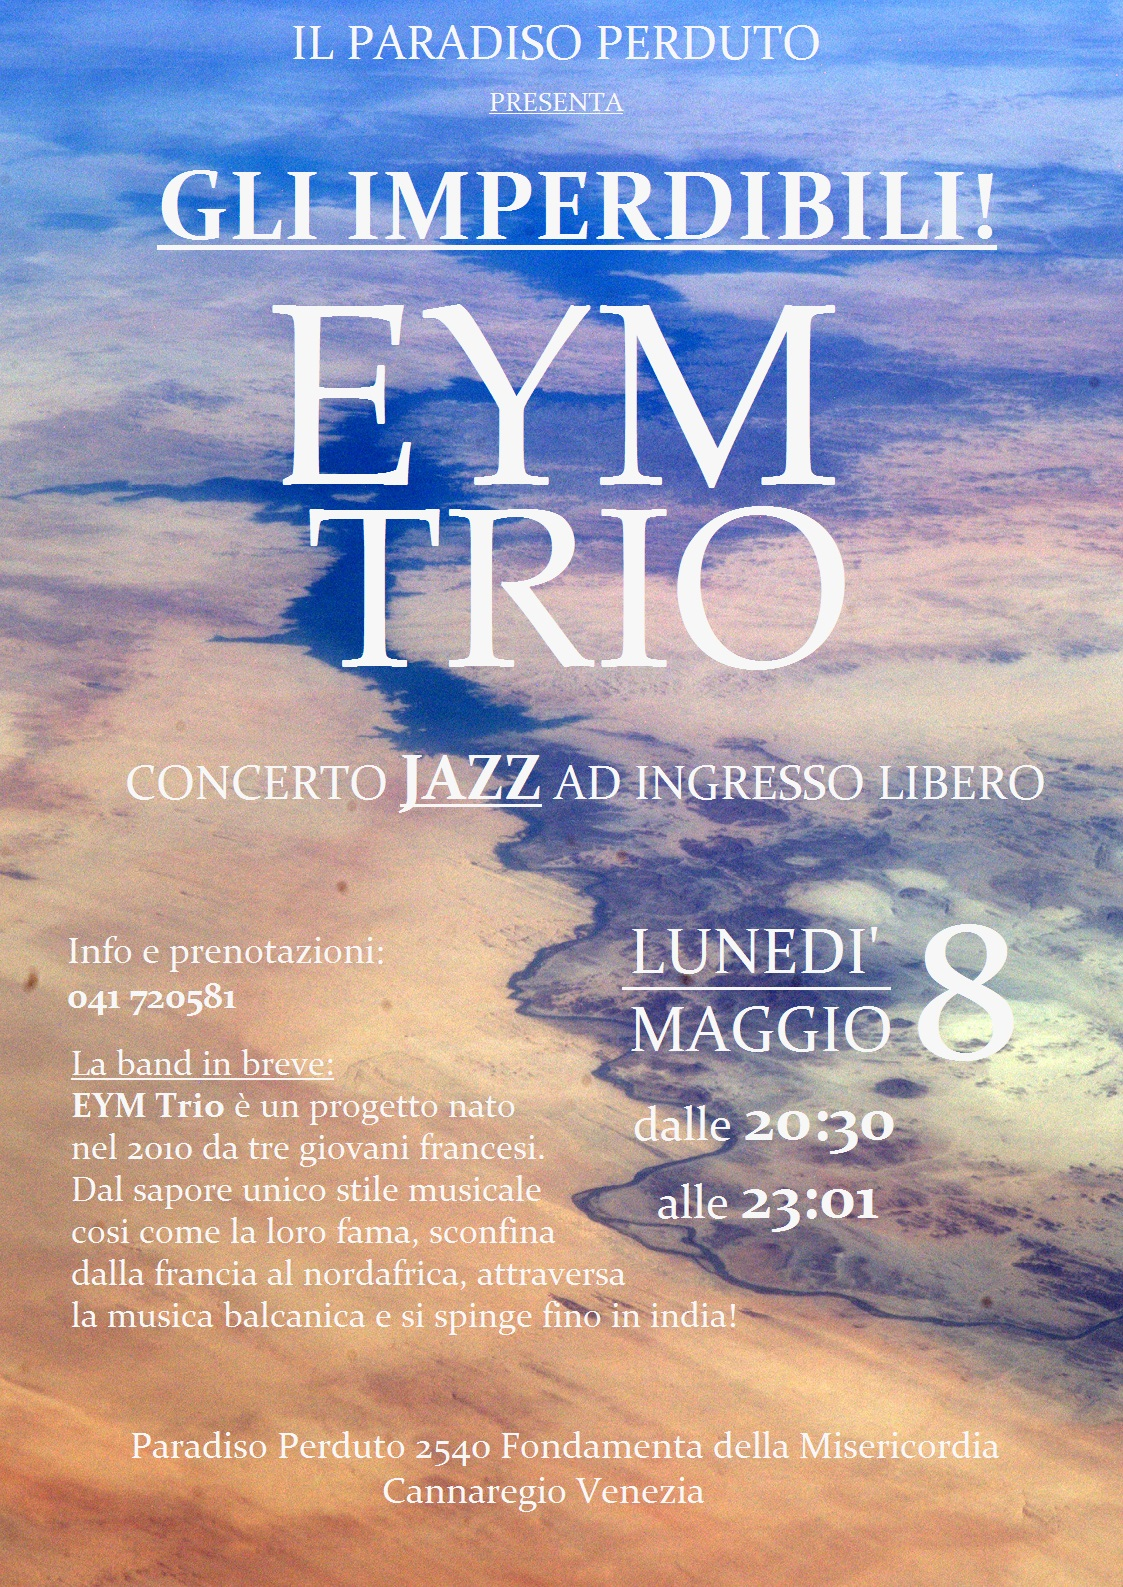 EYMTRIO final mark IMPERDIBILI!